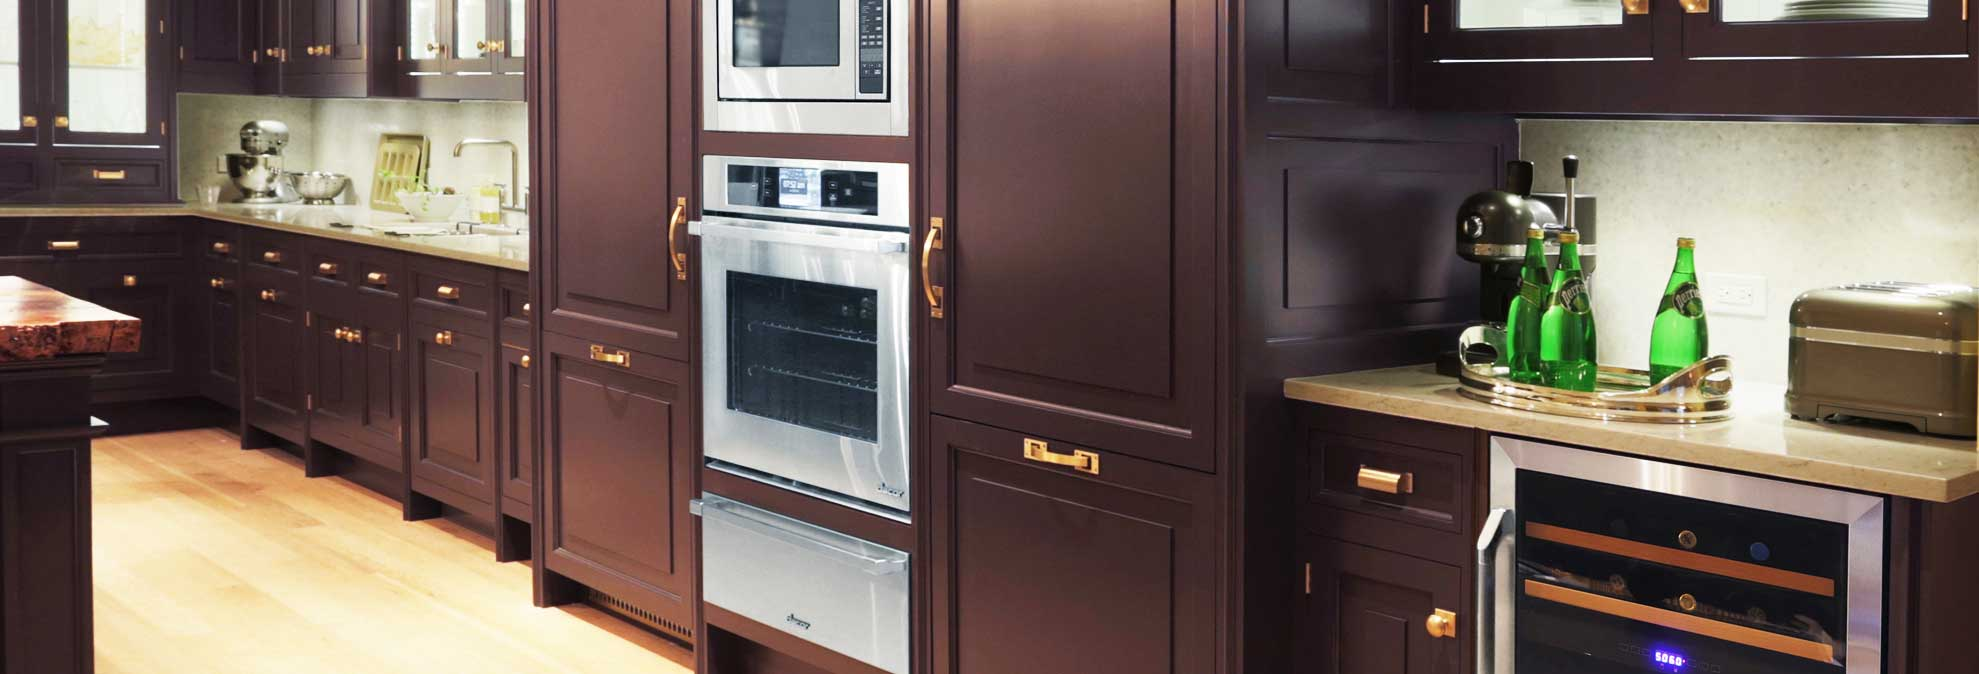 Best Kitchen Cabinet Buying Guide  Consumer Reports